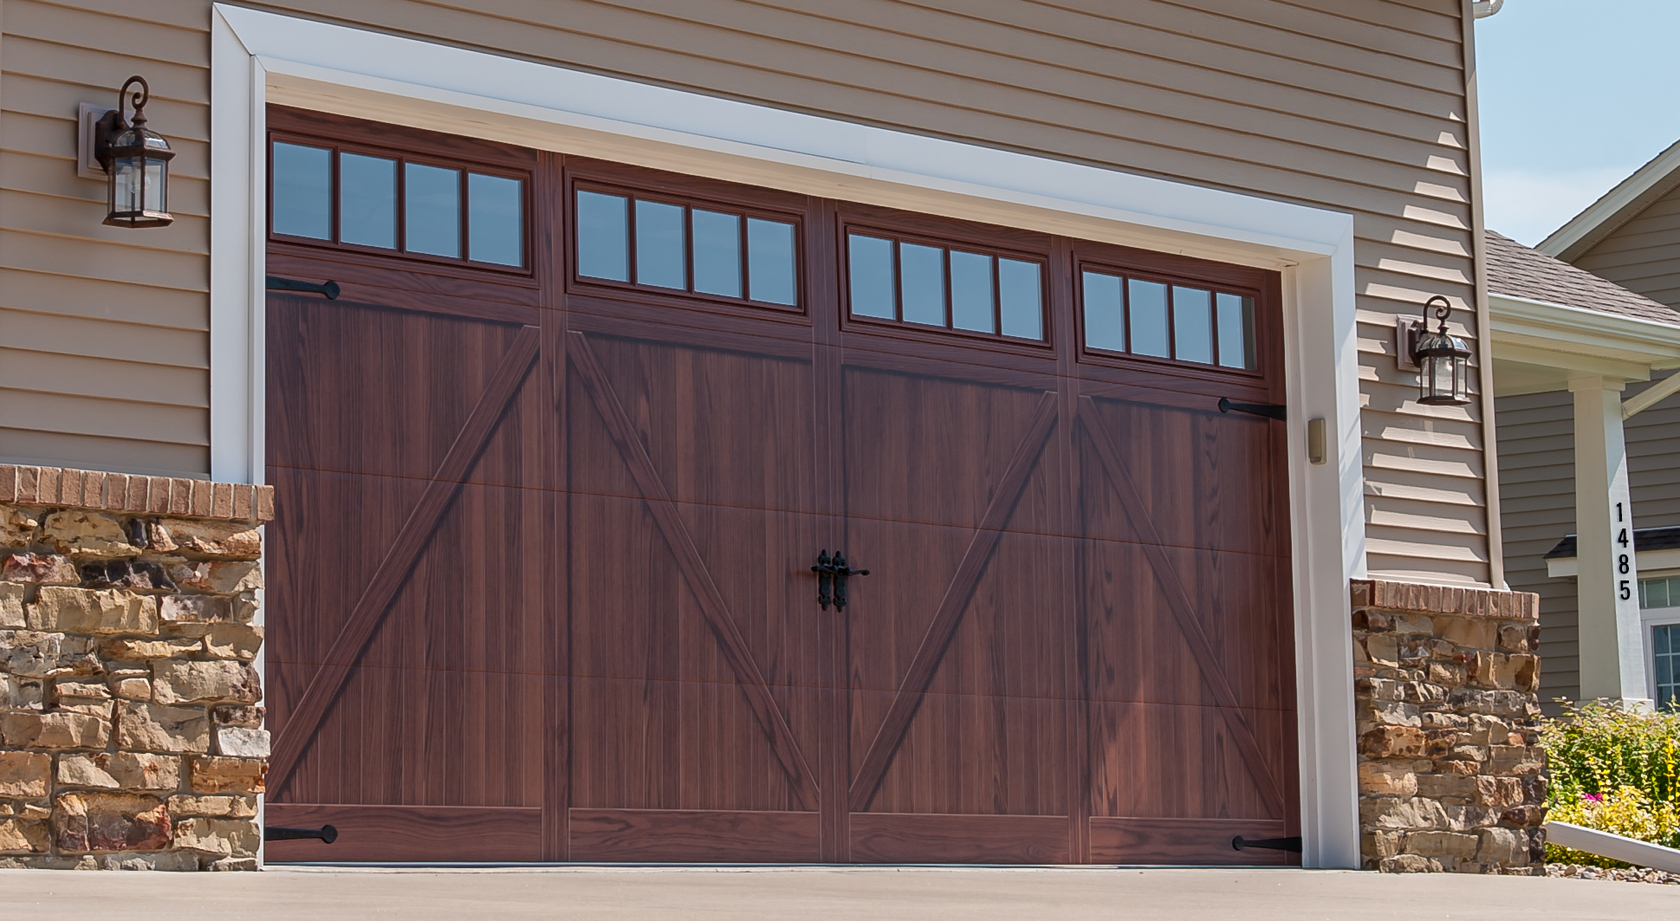 Sturdi bilt flush overlay for Flush panel wood garage door